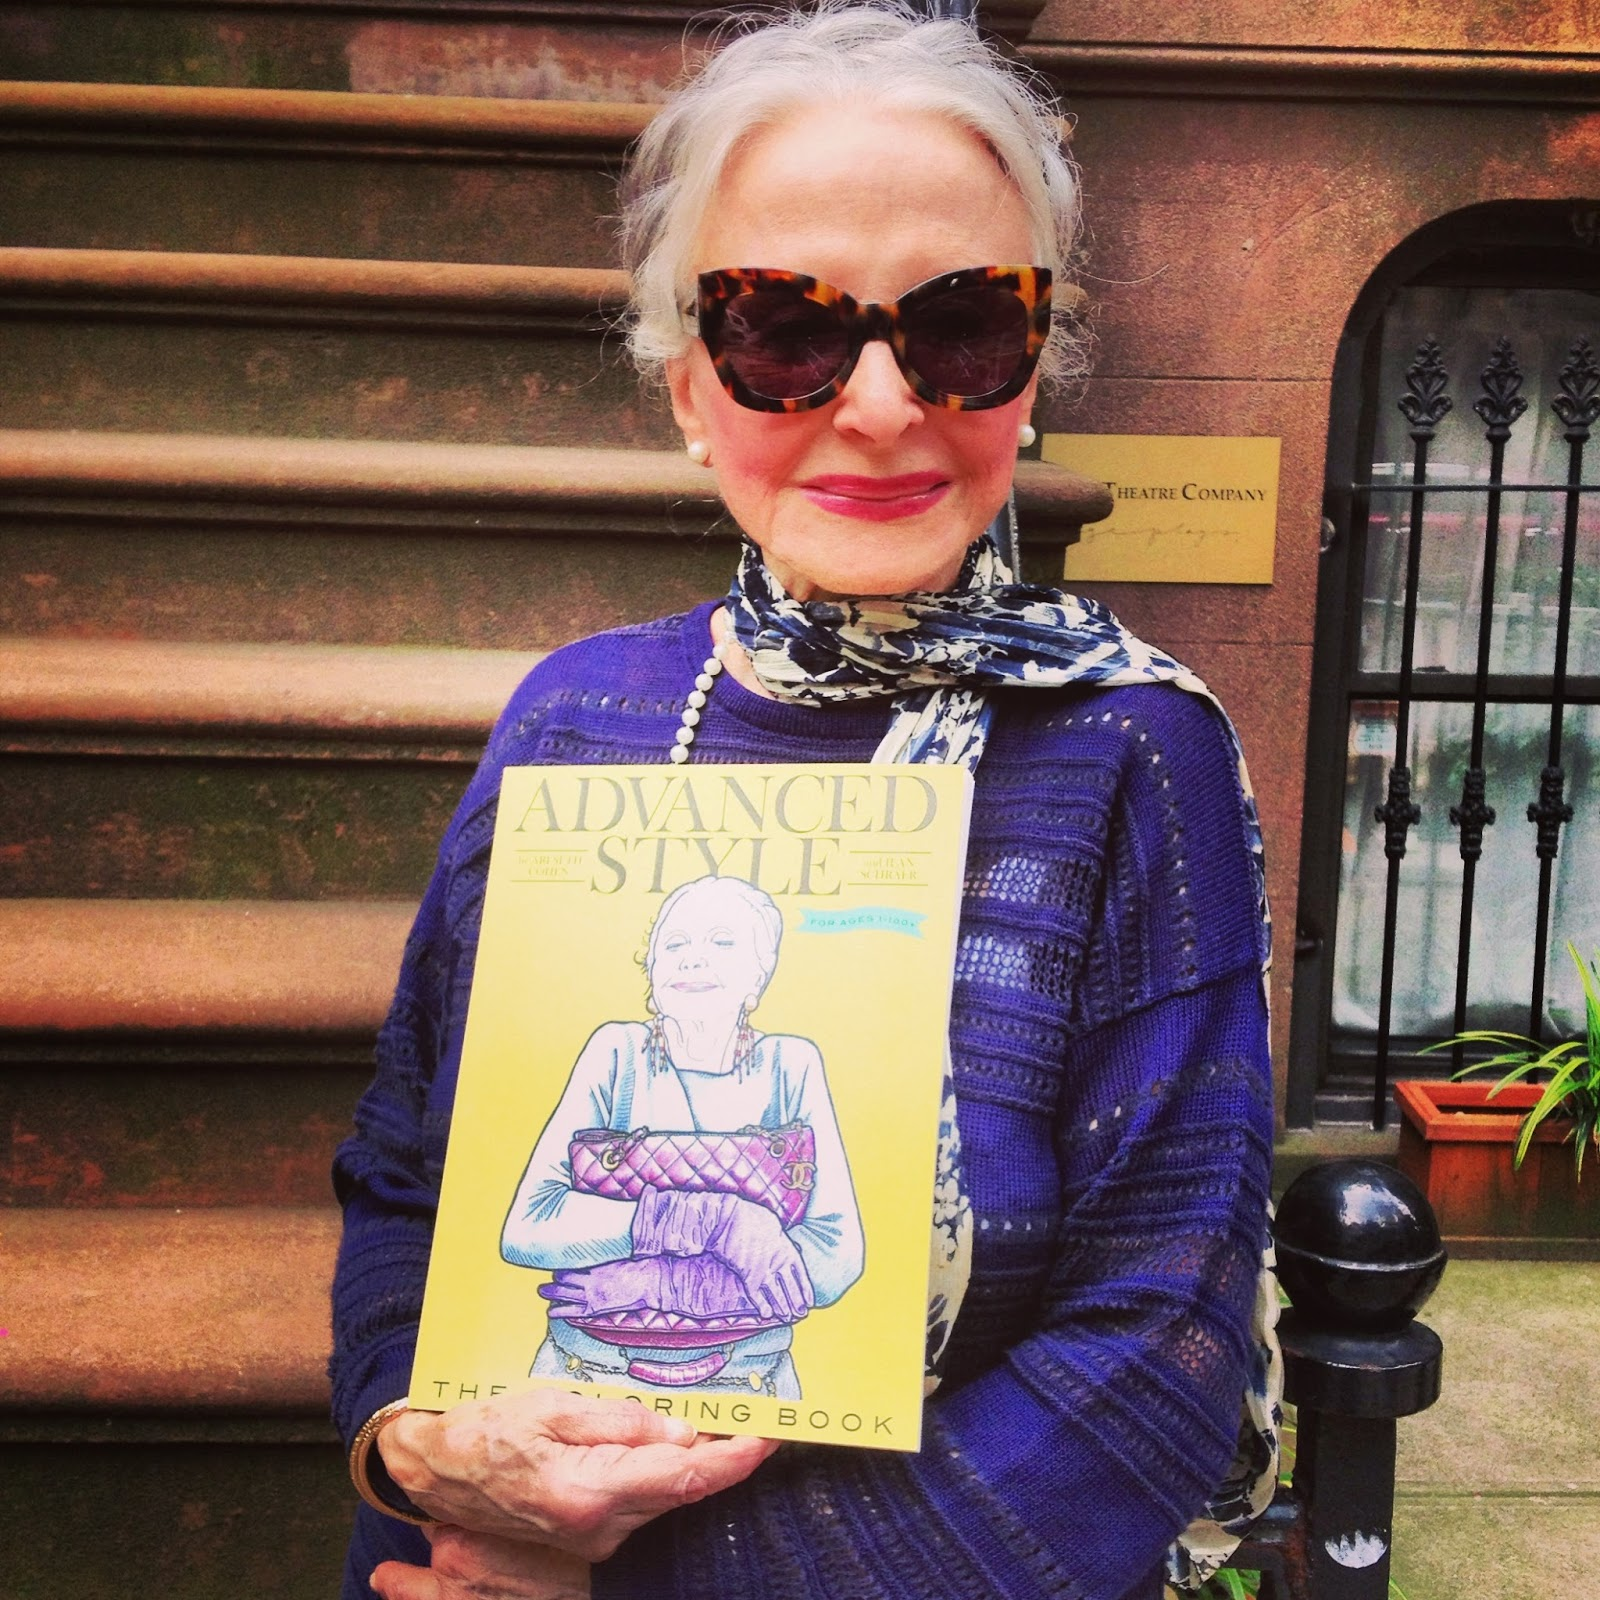 Joyce Carpati, The 80-year-old Cover Star of The Advanced Style ...